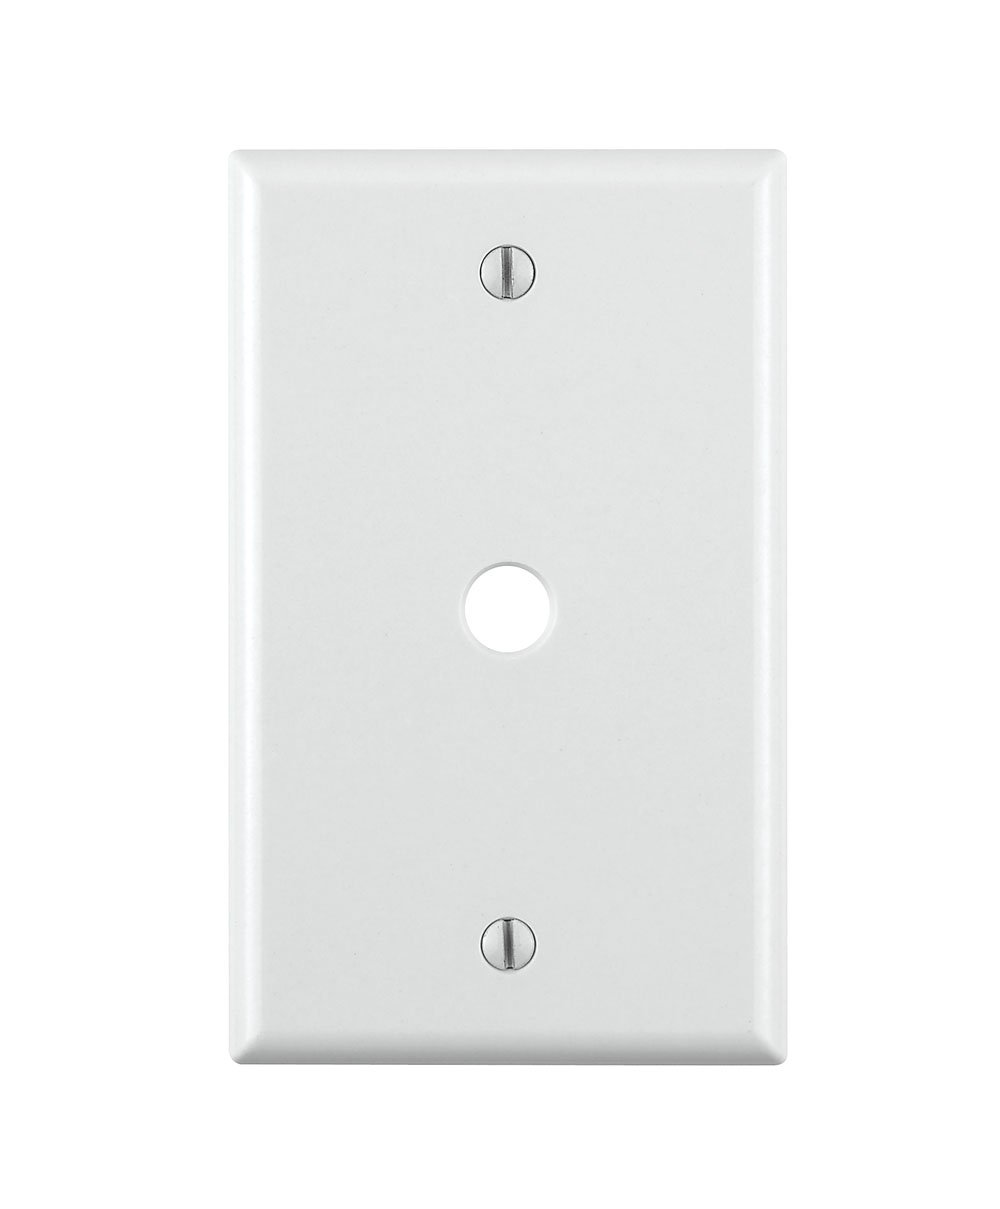 Leviton 88013 001-000 Standard Size Telephone/Cable Wall Plate, 1 Gang, 4-1/2 in L X 2-3/4 in W 0.22 in T, Pack of 1 White